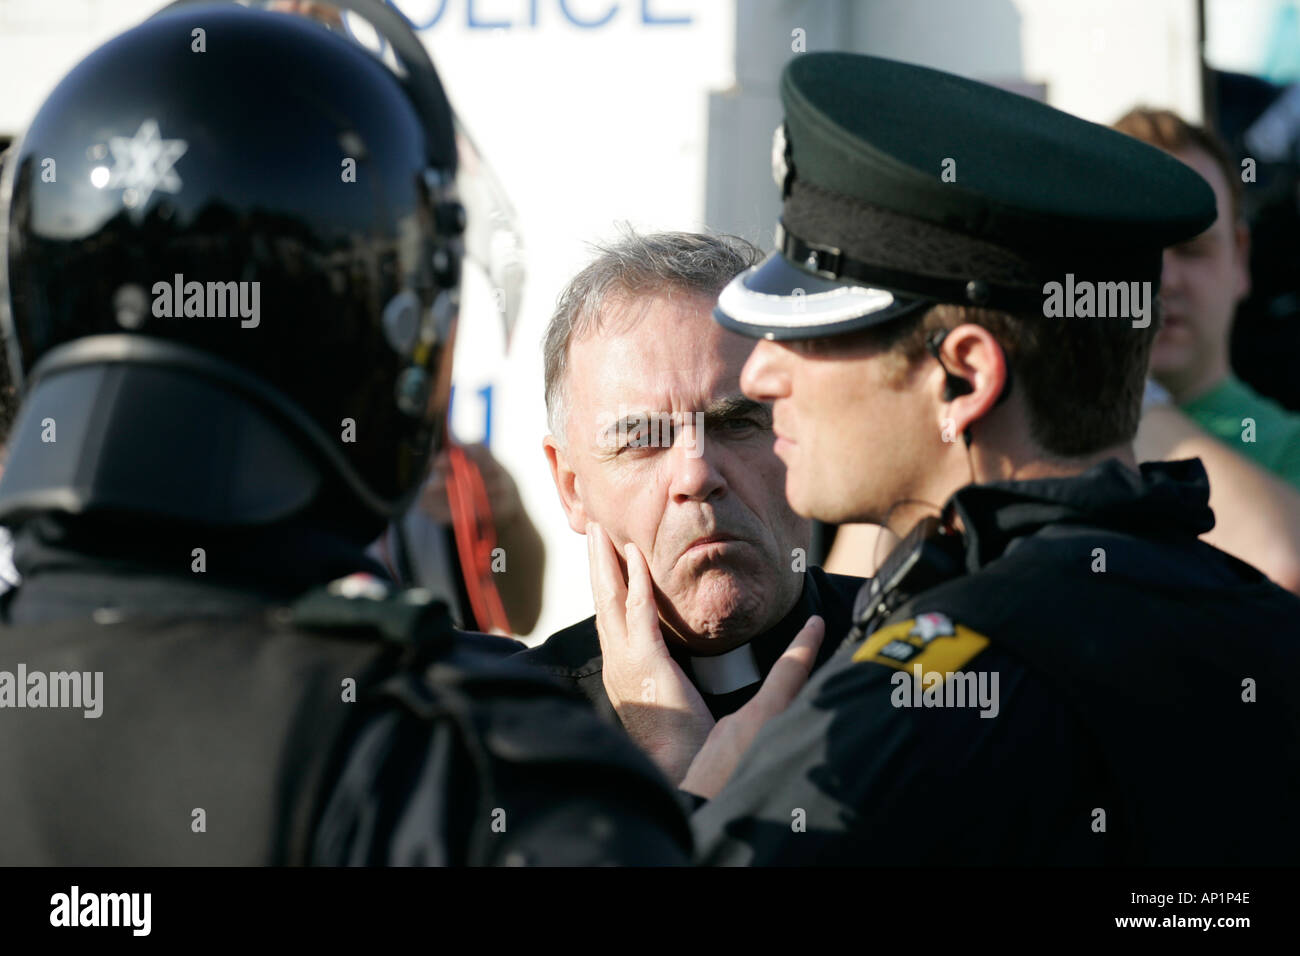 Fr Aidan troy talks to PSNI officers on crumlin road at ardoyne shops belfast 12th July - Stock Image